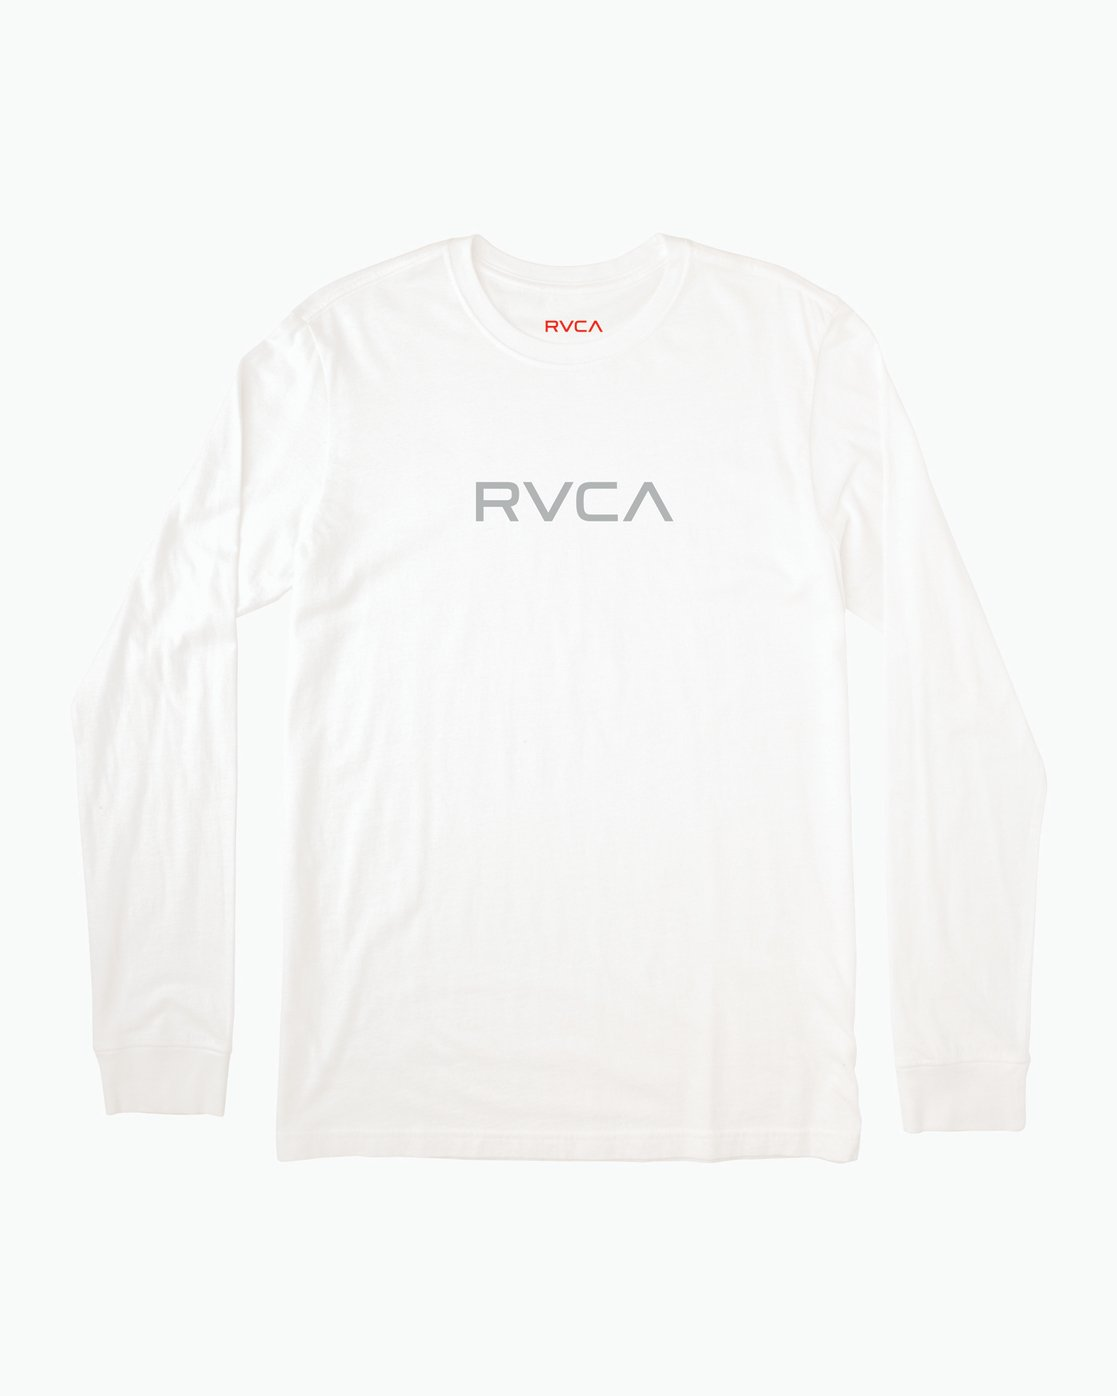 0 Small RVCA Embroidered Long Sleeve T-Shirt White M465SRSM RVCA